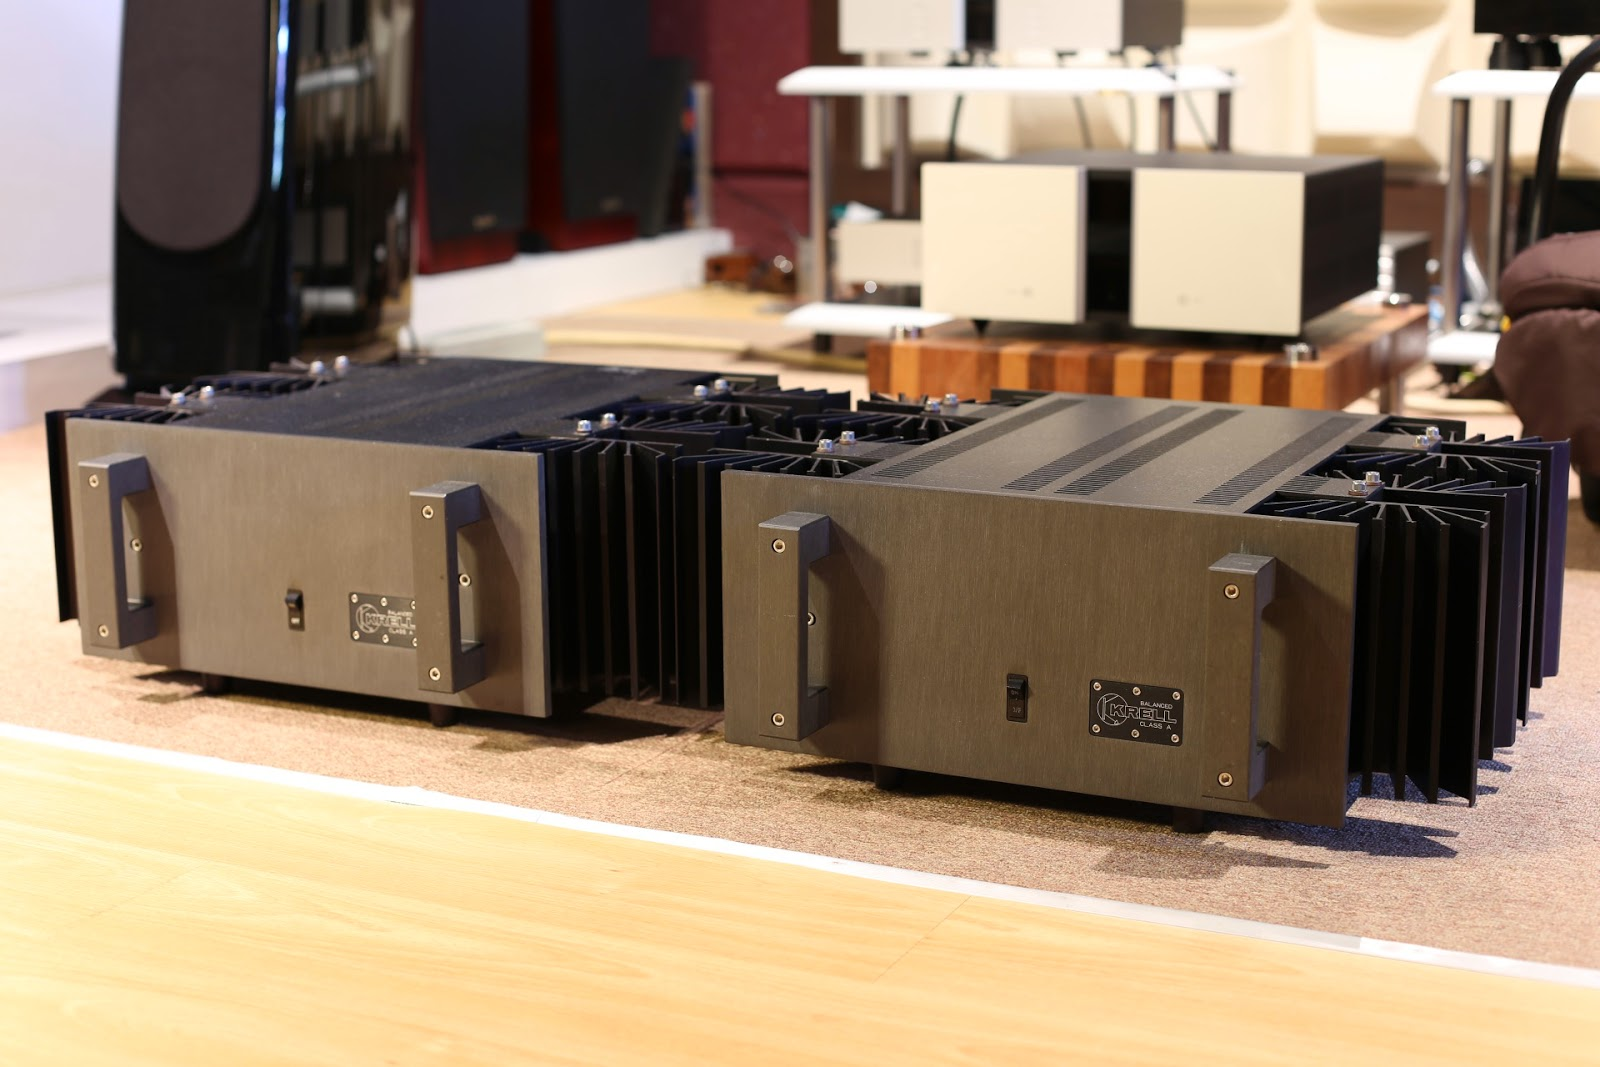 dong fong audio krell kma 160 ( used )krell kma 160 ( used ) used for sale krell classa mono block power amp 160w pure class a